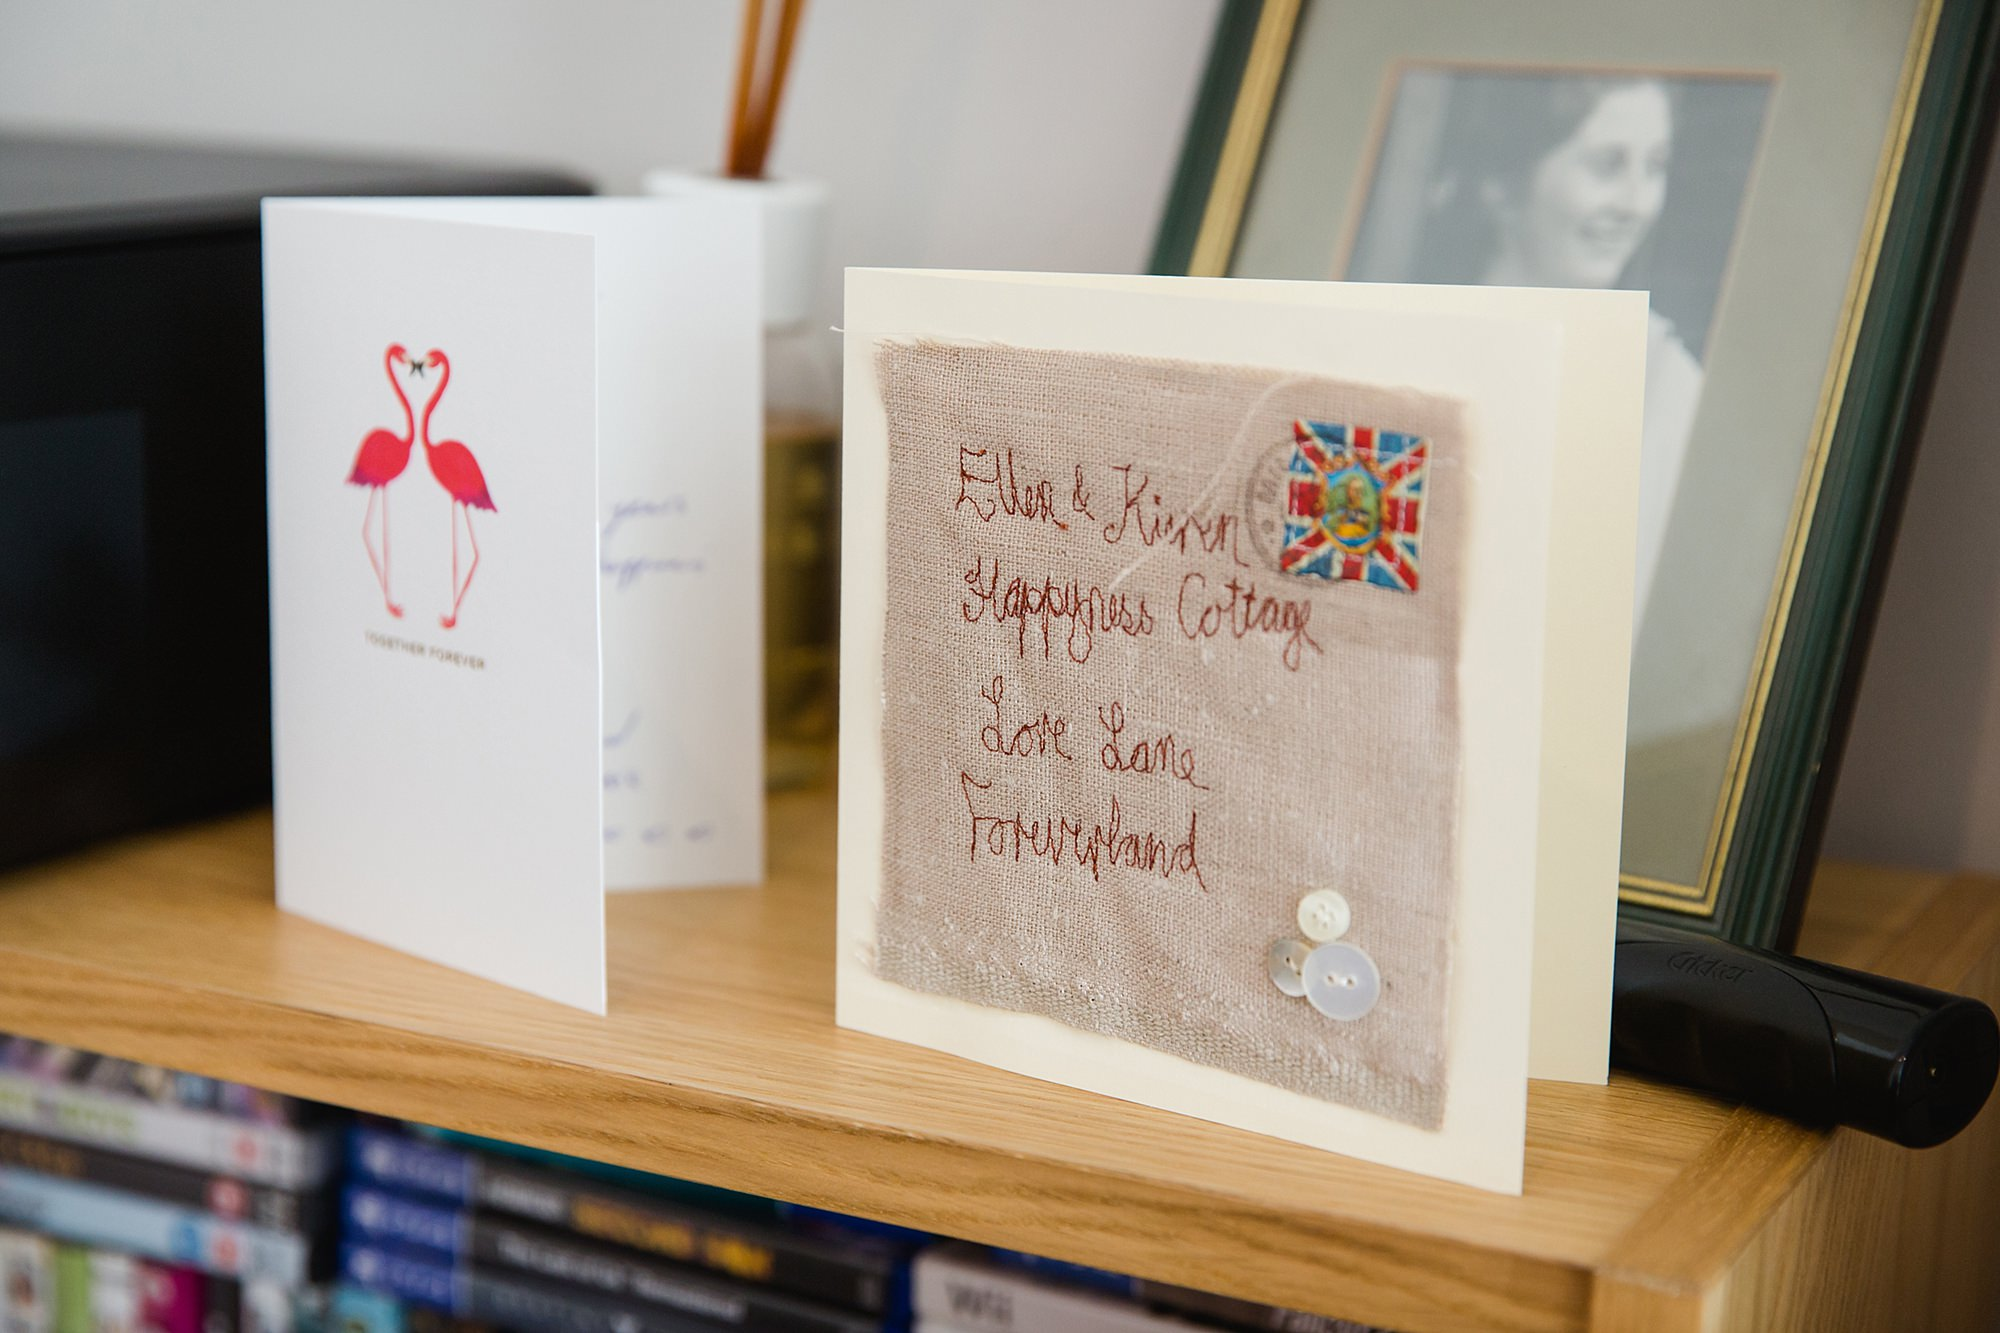 oyster shed wedding congratulations cards for bride and groom